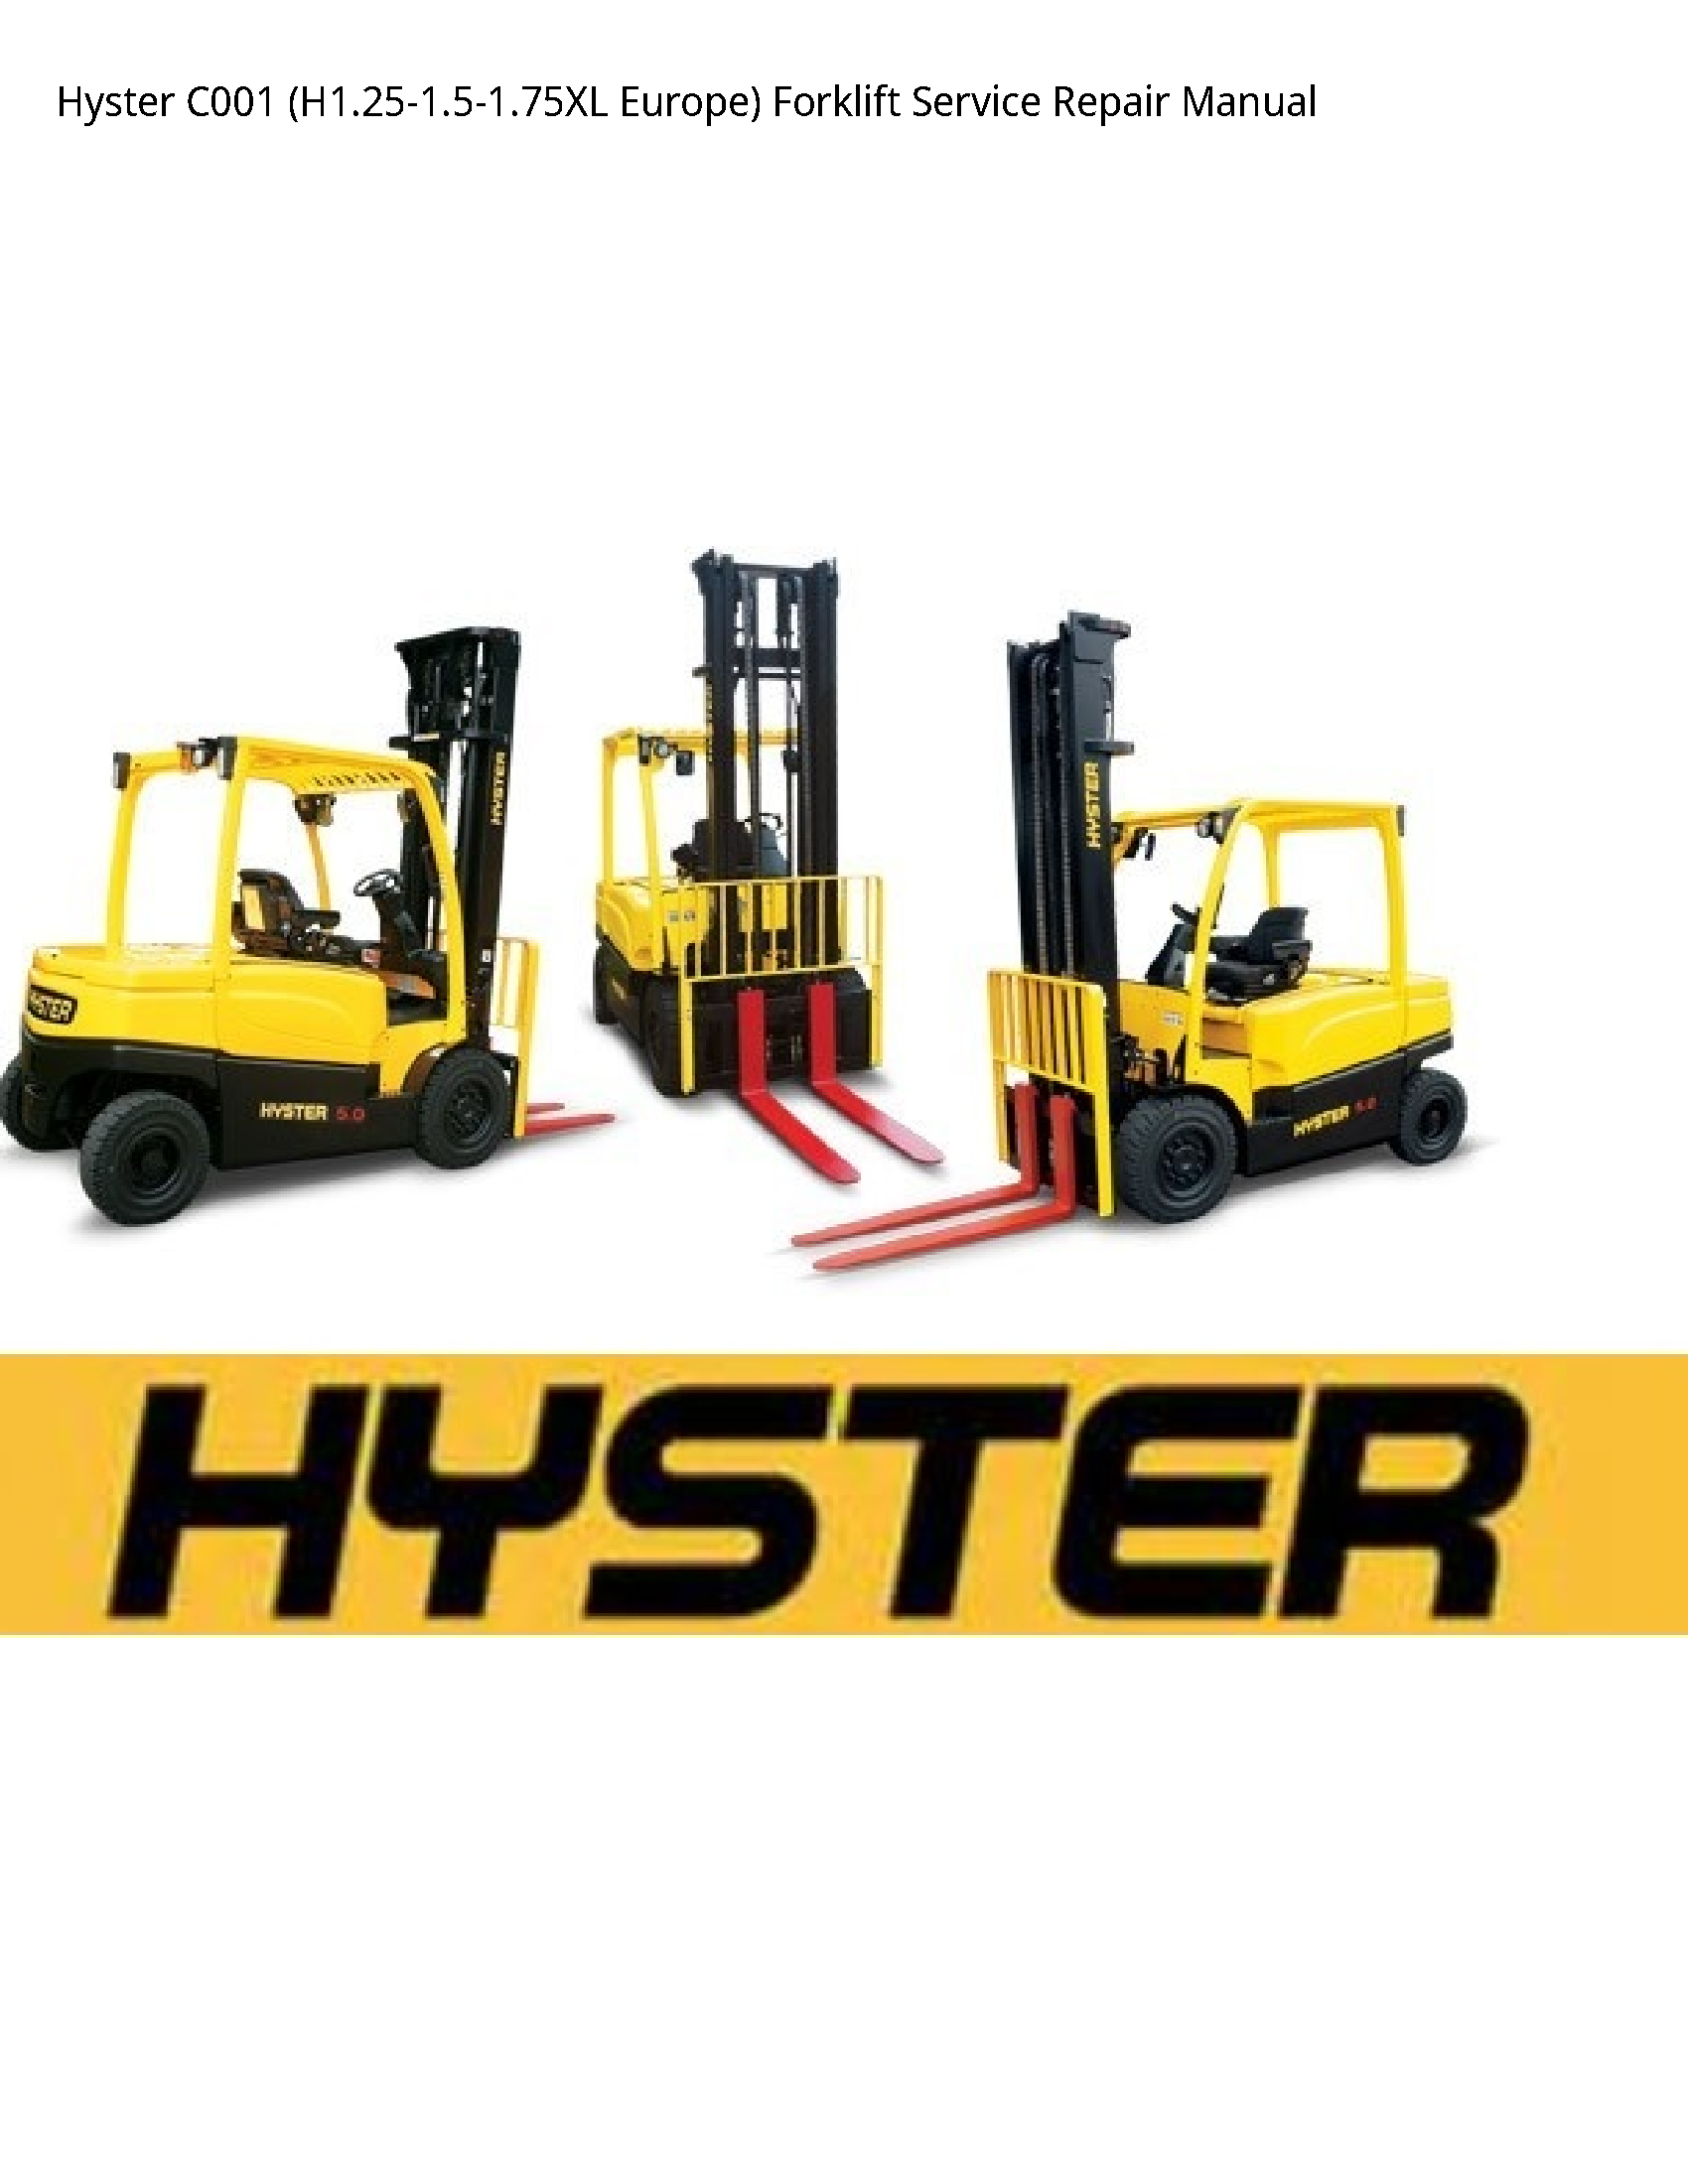 Hyster C001 Europe) Forklift manual